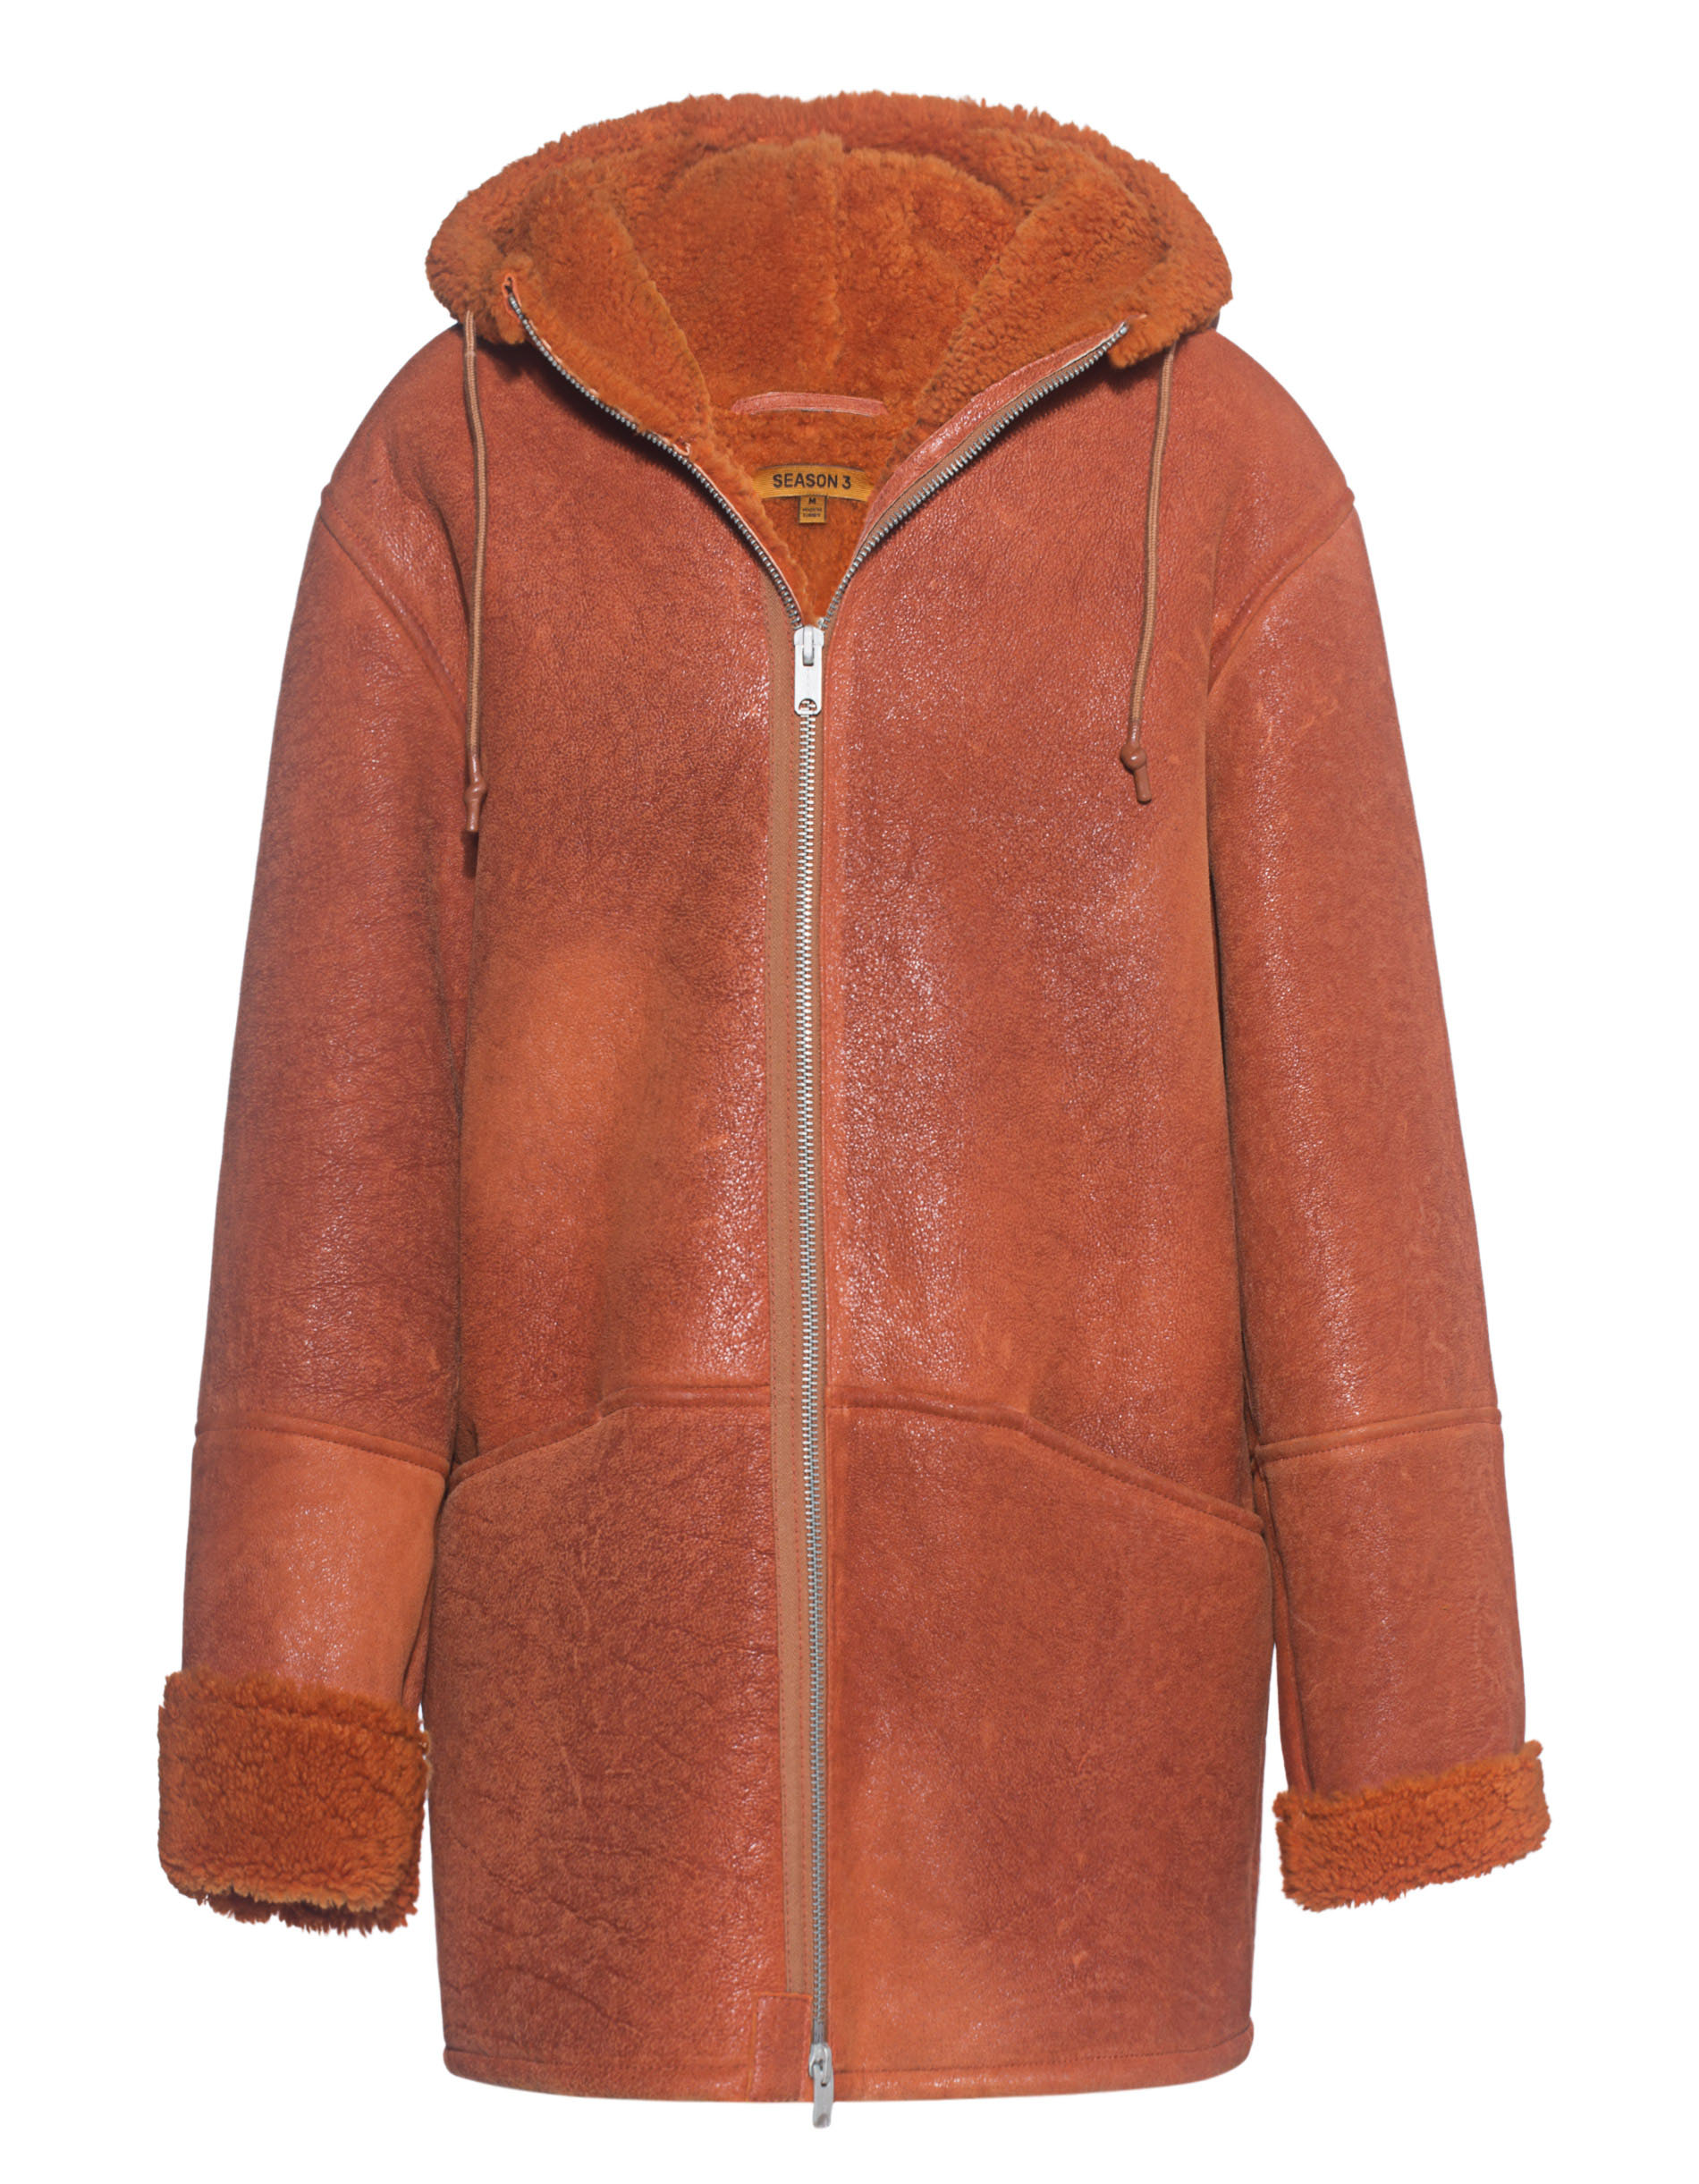 red leather jacket from yeezy season 3